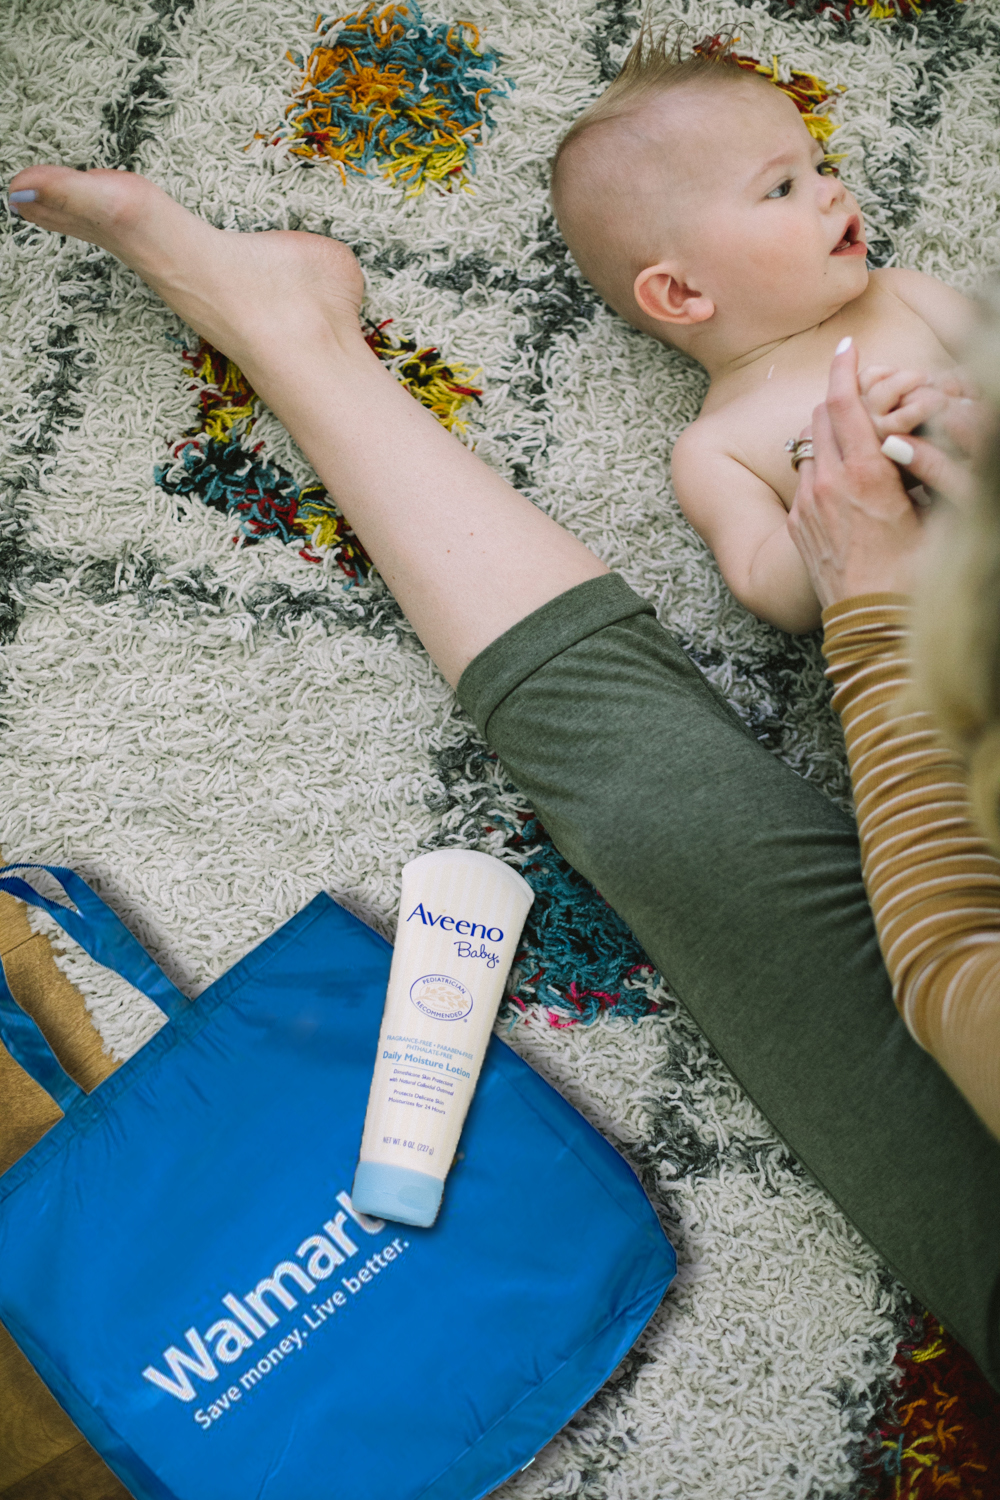 Aveeno Baby Lotion review, featured by top US lifestyle blog, Life of a Sister